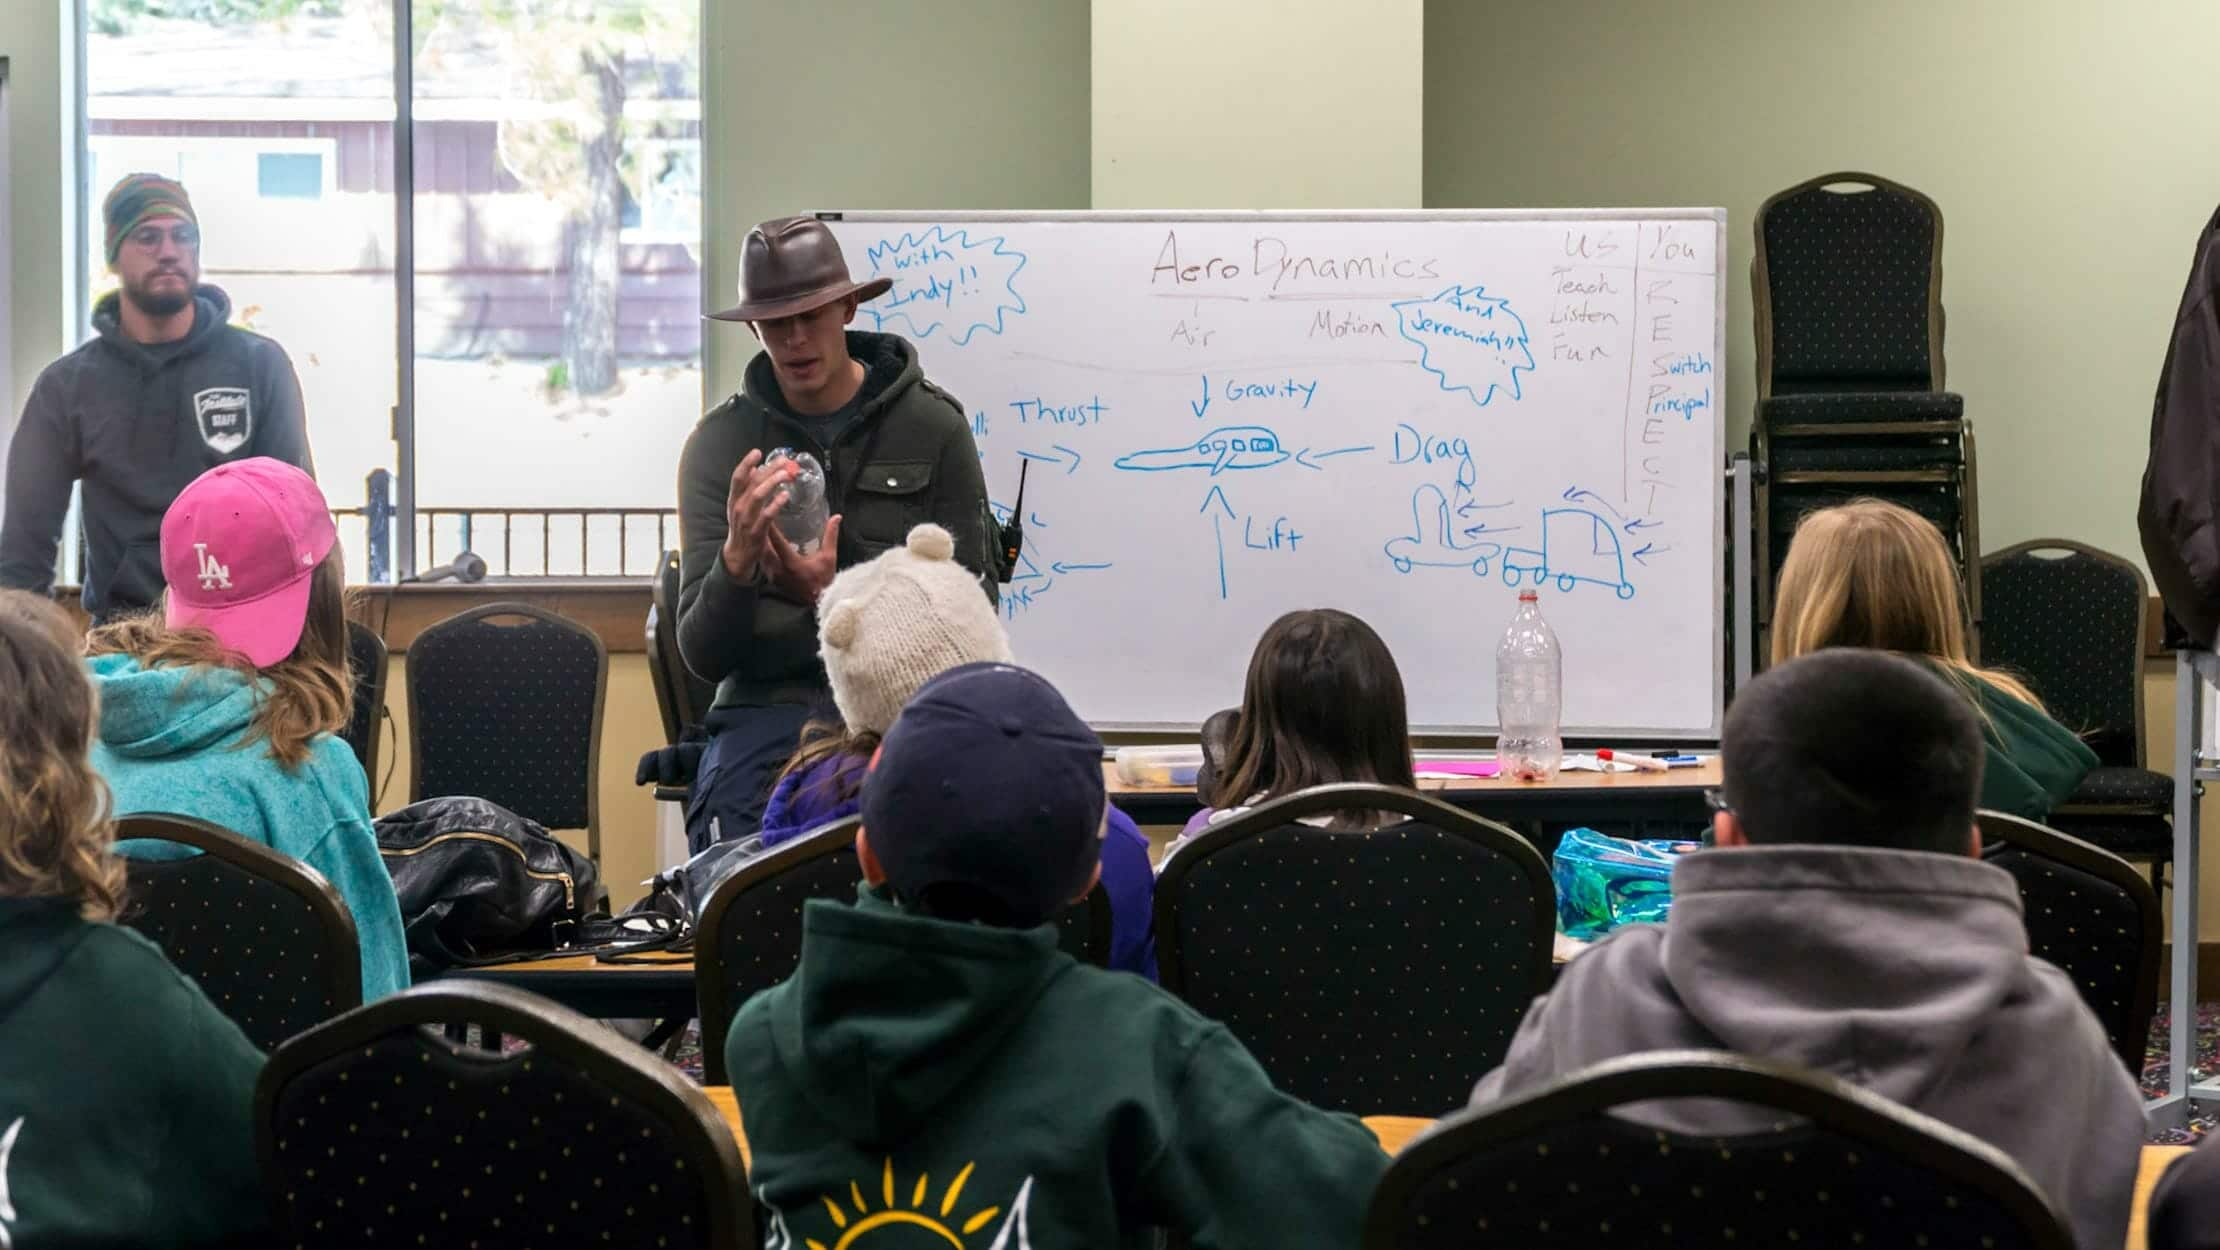 Pali instructor teaches aerodynamics class to student group